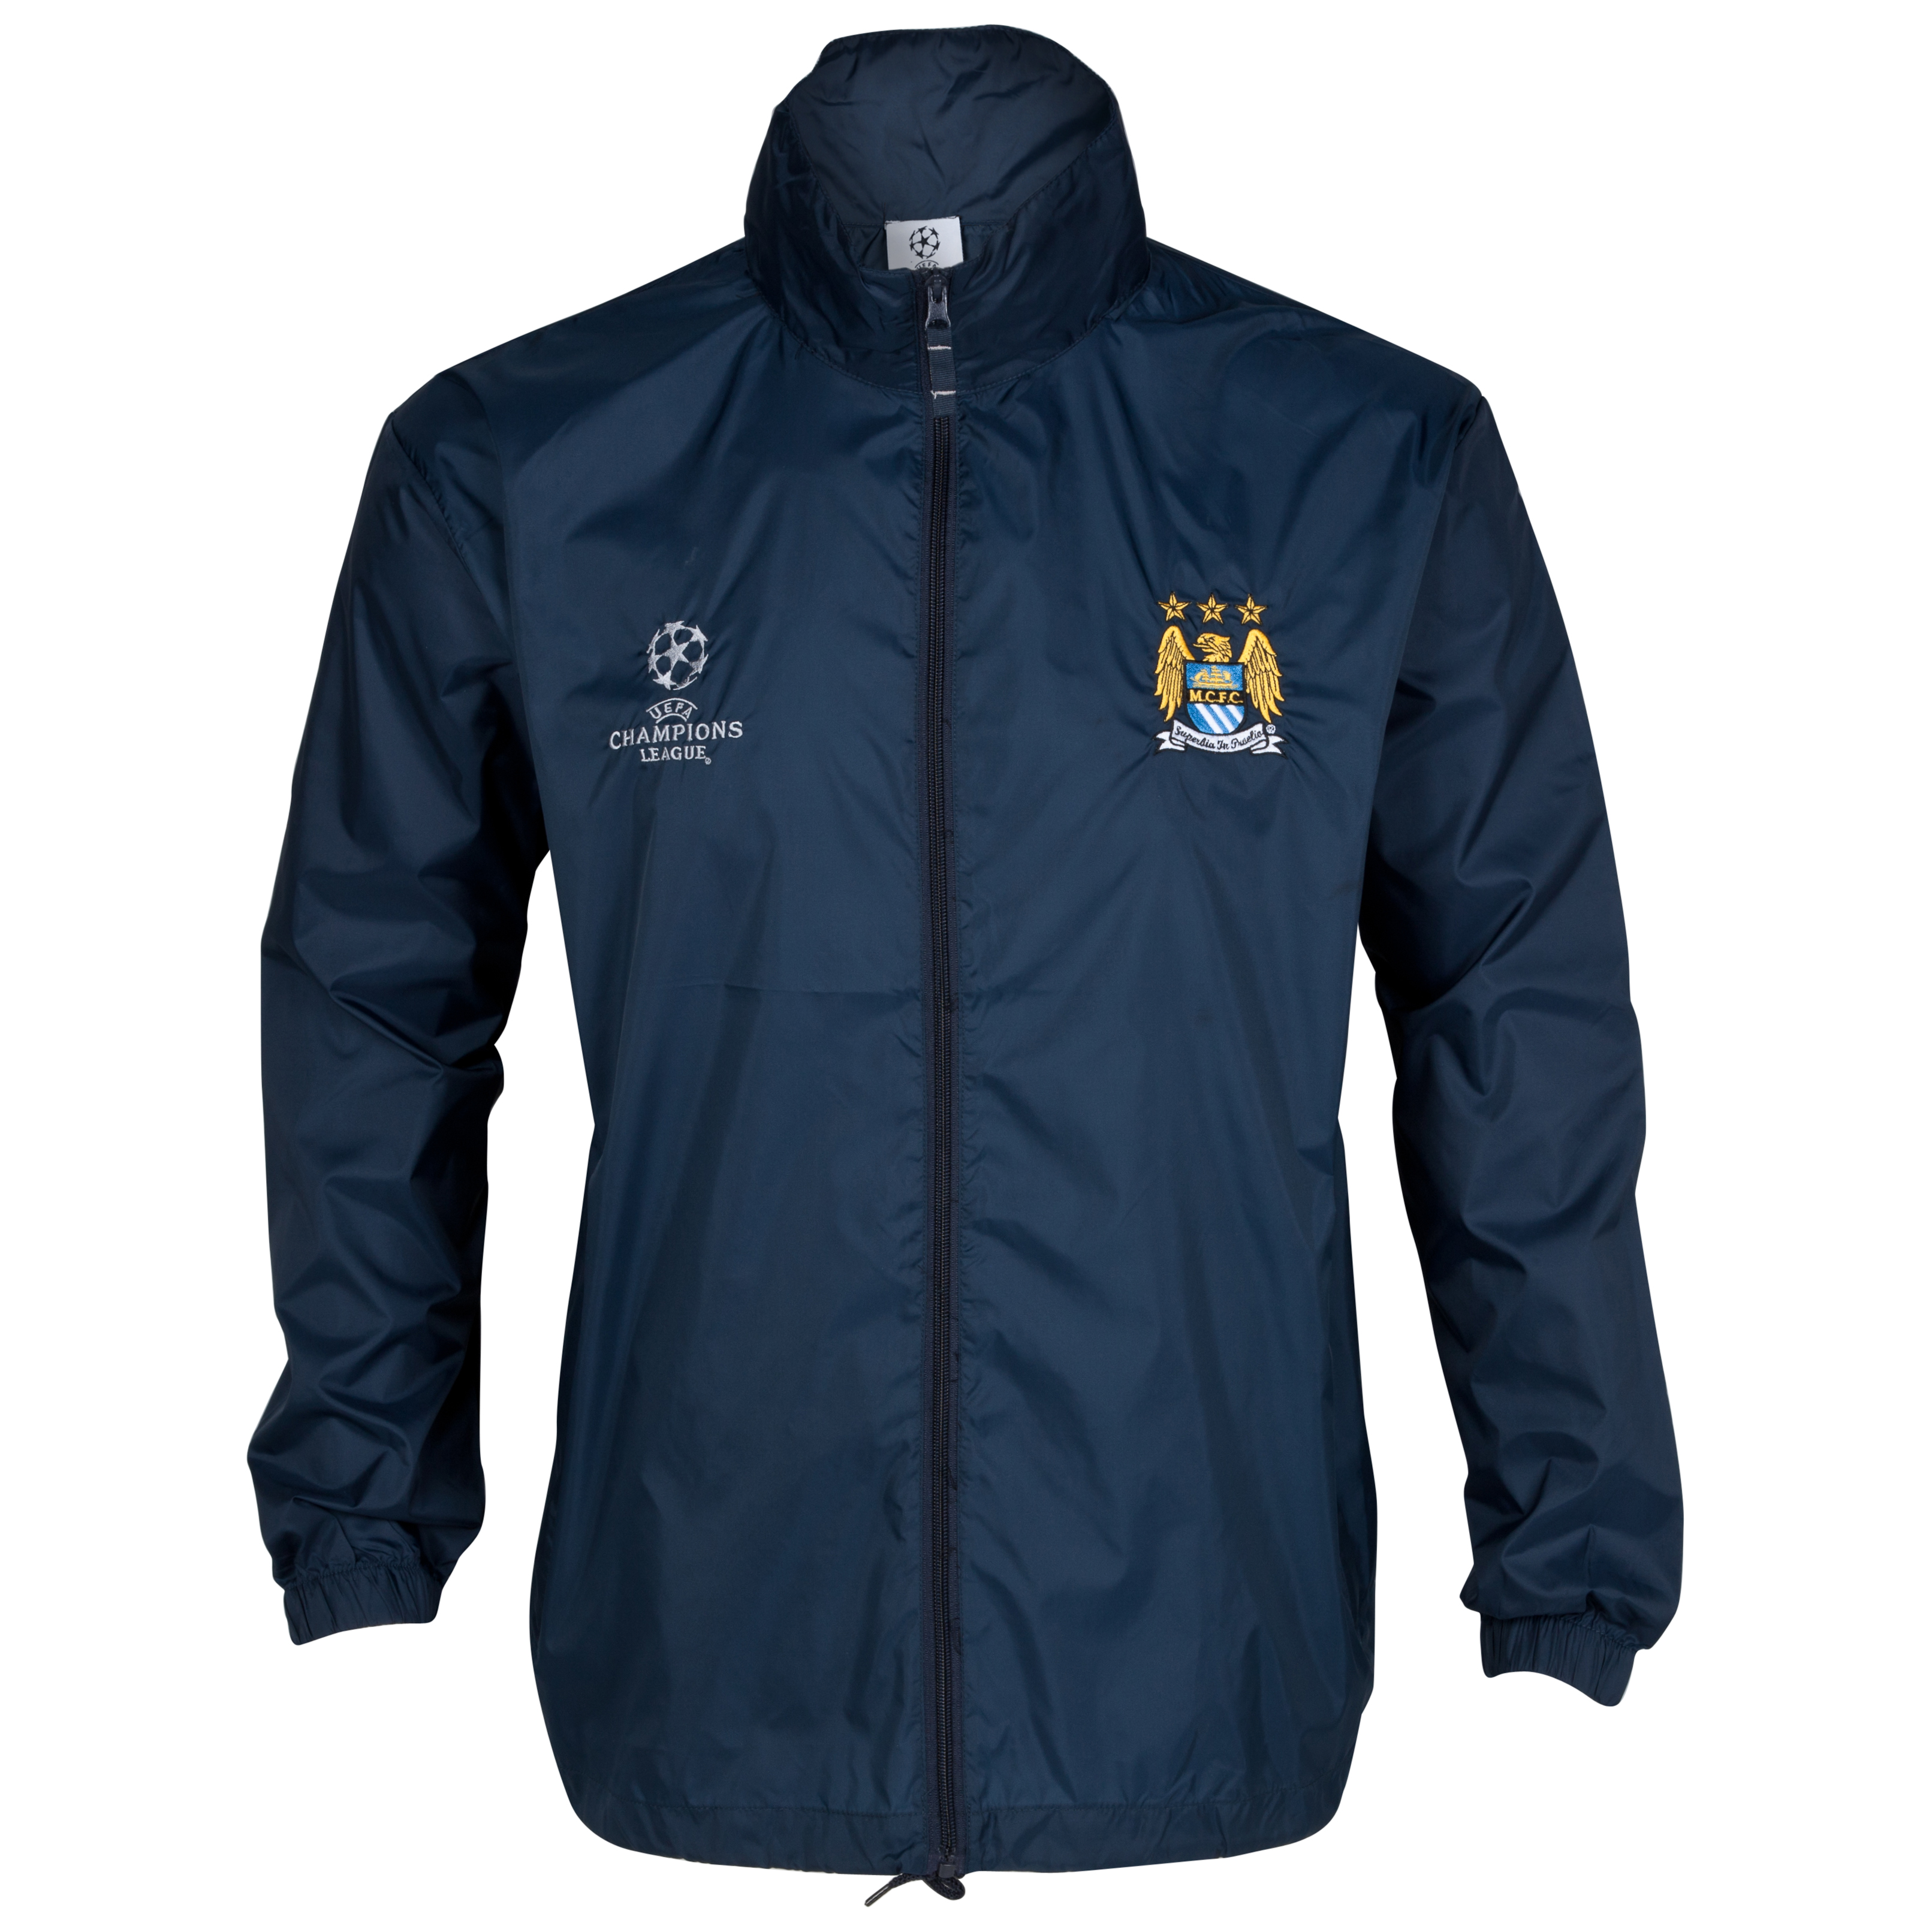 Manchester City Embroidered Windbreaker - Navy